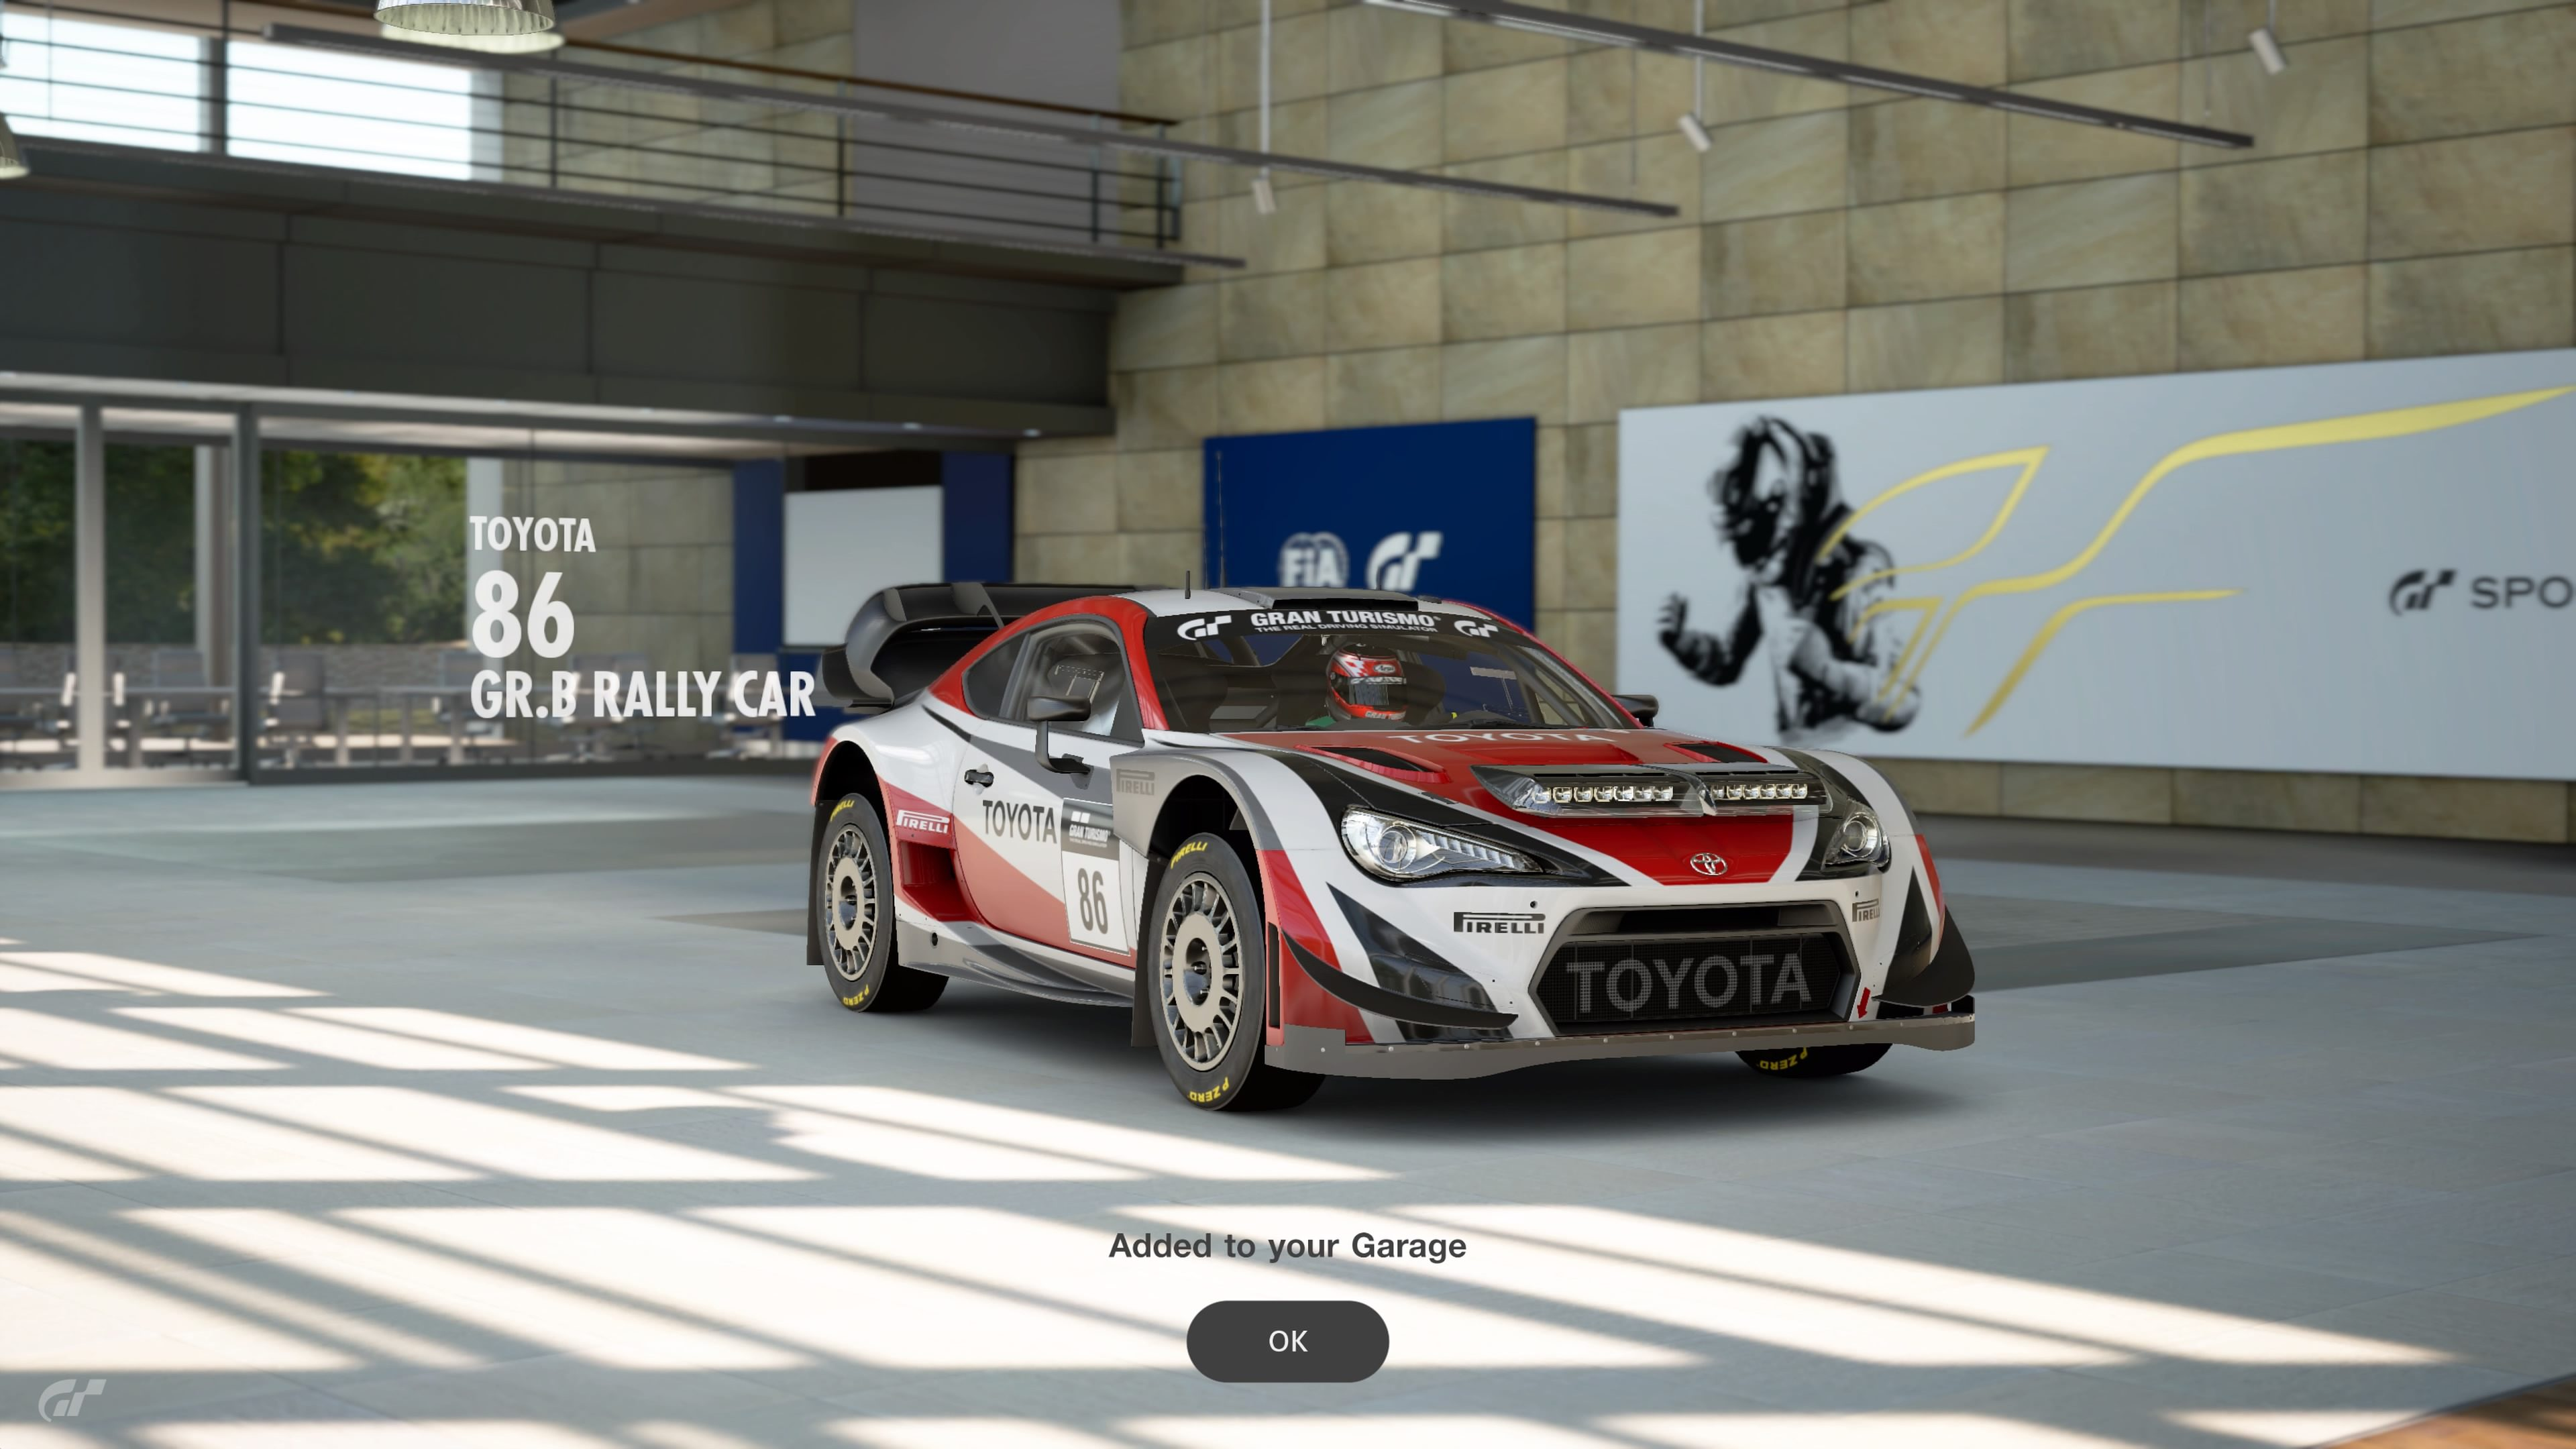 GT Sport - What first car did you receive?